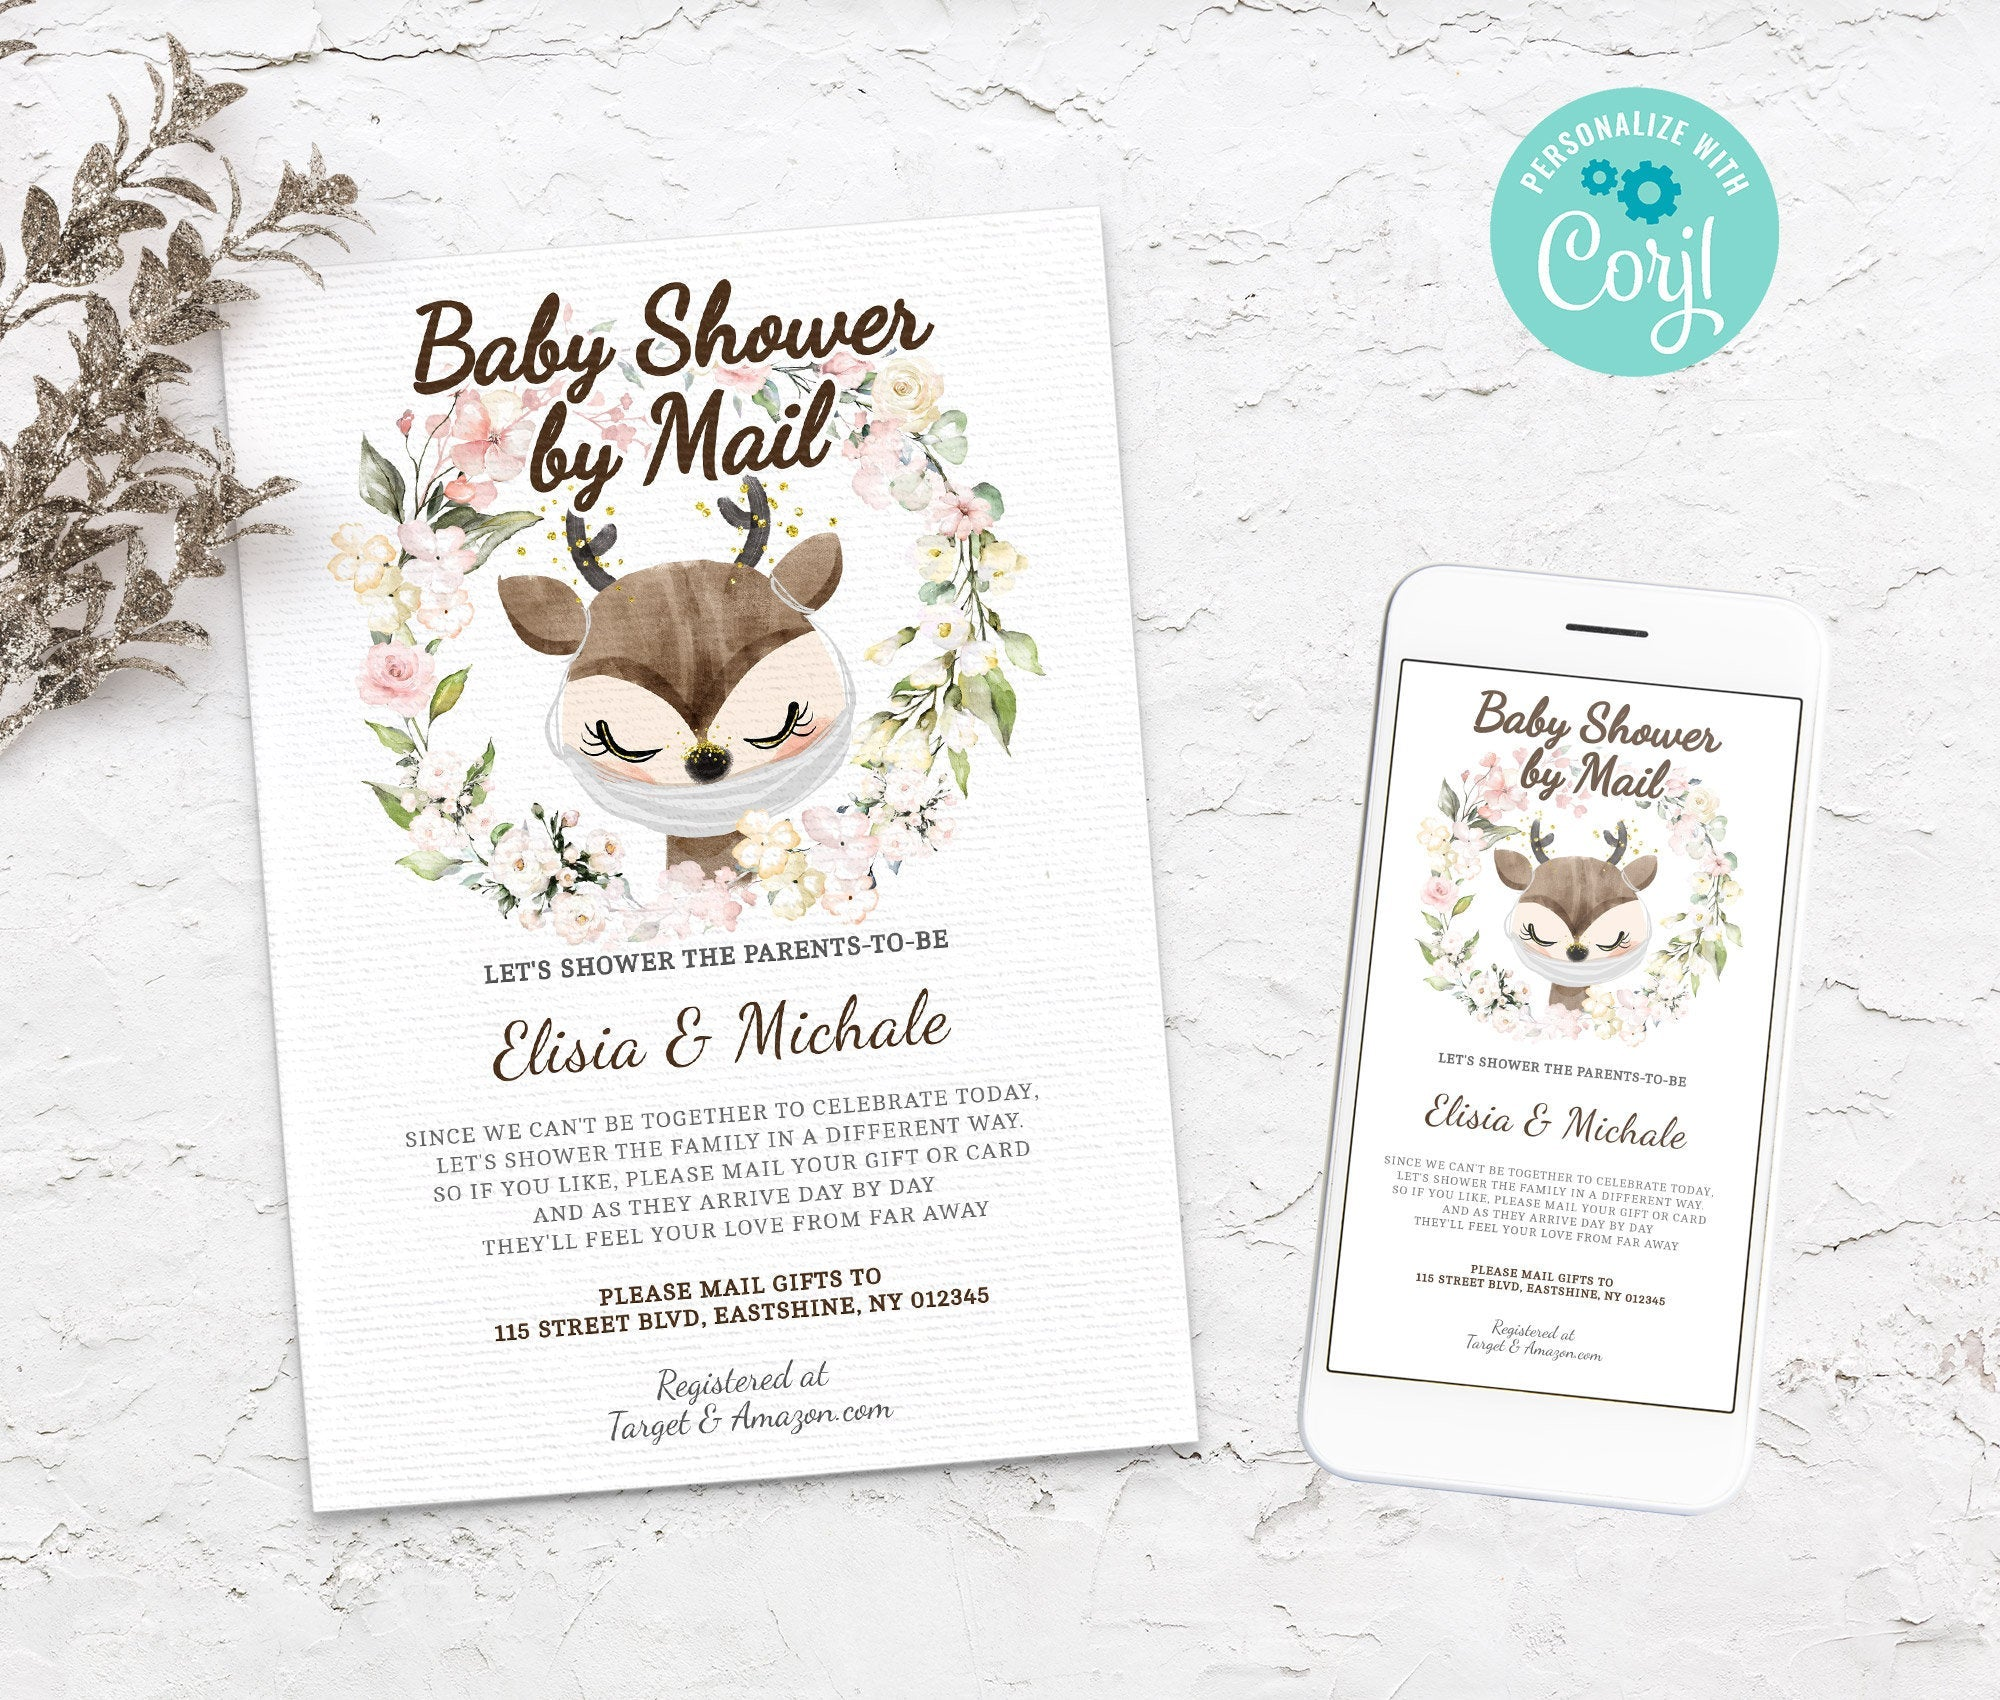 Baby Shower by Mail Raindeer Template - Baby shower invitation - Shower by Mail, Shower invite,  Editable Text, Instant Download,3614 BS3601